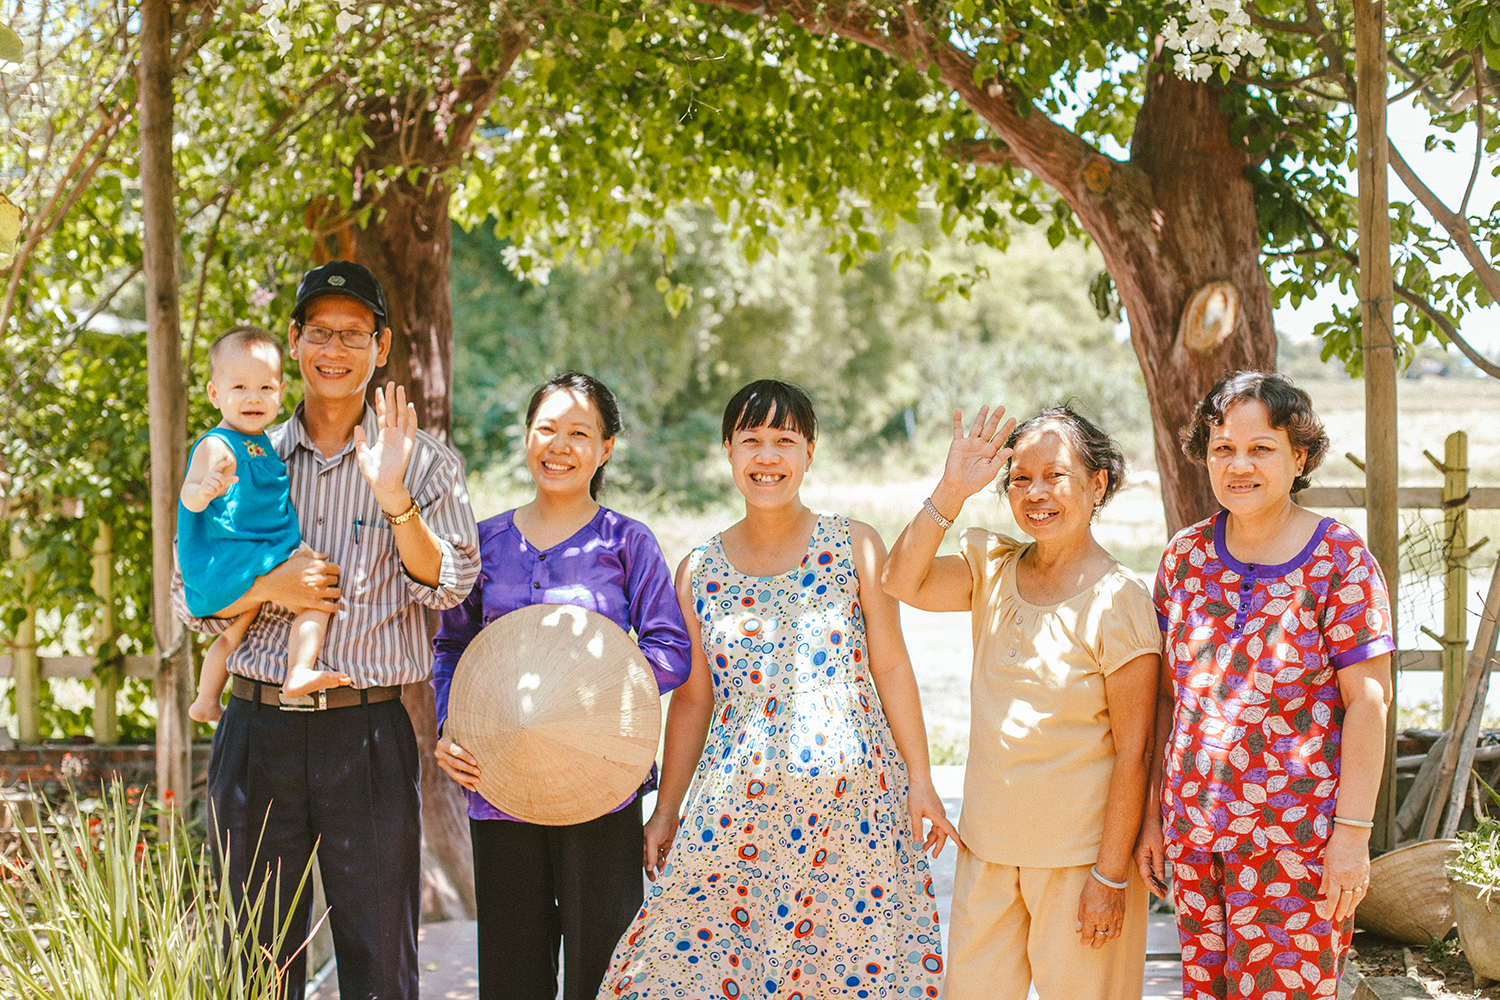 Hoang and his family, from the left: Hoang holding his baby, his wife, his sister (with her baby to be!), his mother and his aunt